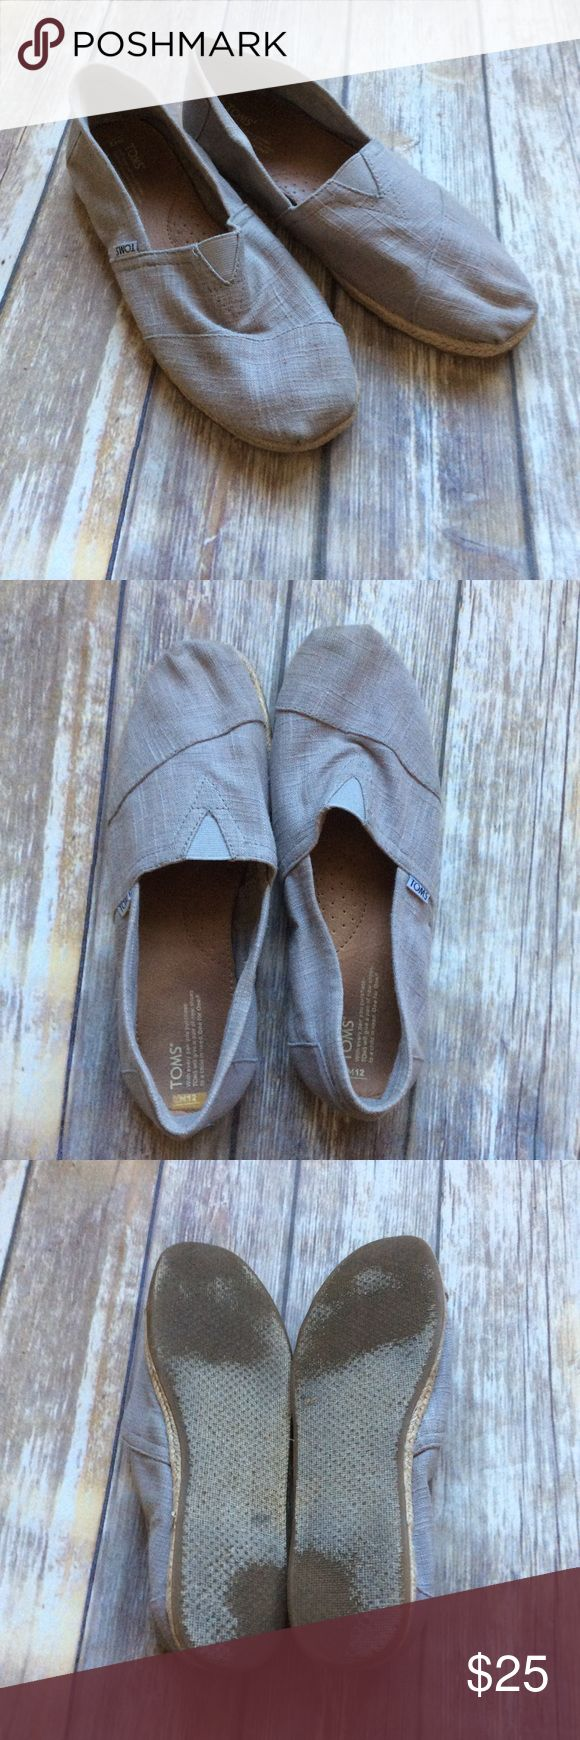 Men's Gray Toms sz 12 Gray toms with weaved detail around the sole. Great condition with minor wear on the bottoms  ❌no trades, holds, or lowball offers. ✅Clean and smoke free home, quick shipping, bundle discount, always! 🎁Free gift with $15+ bundle. TOMS Shoes Loafers & Slip-Ons